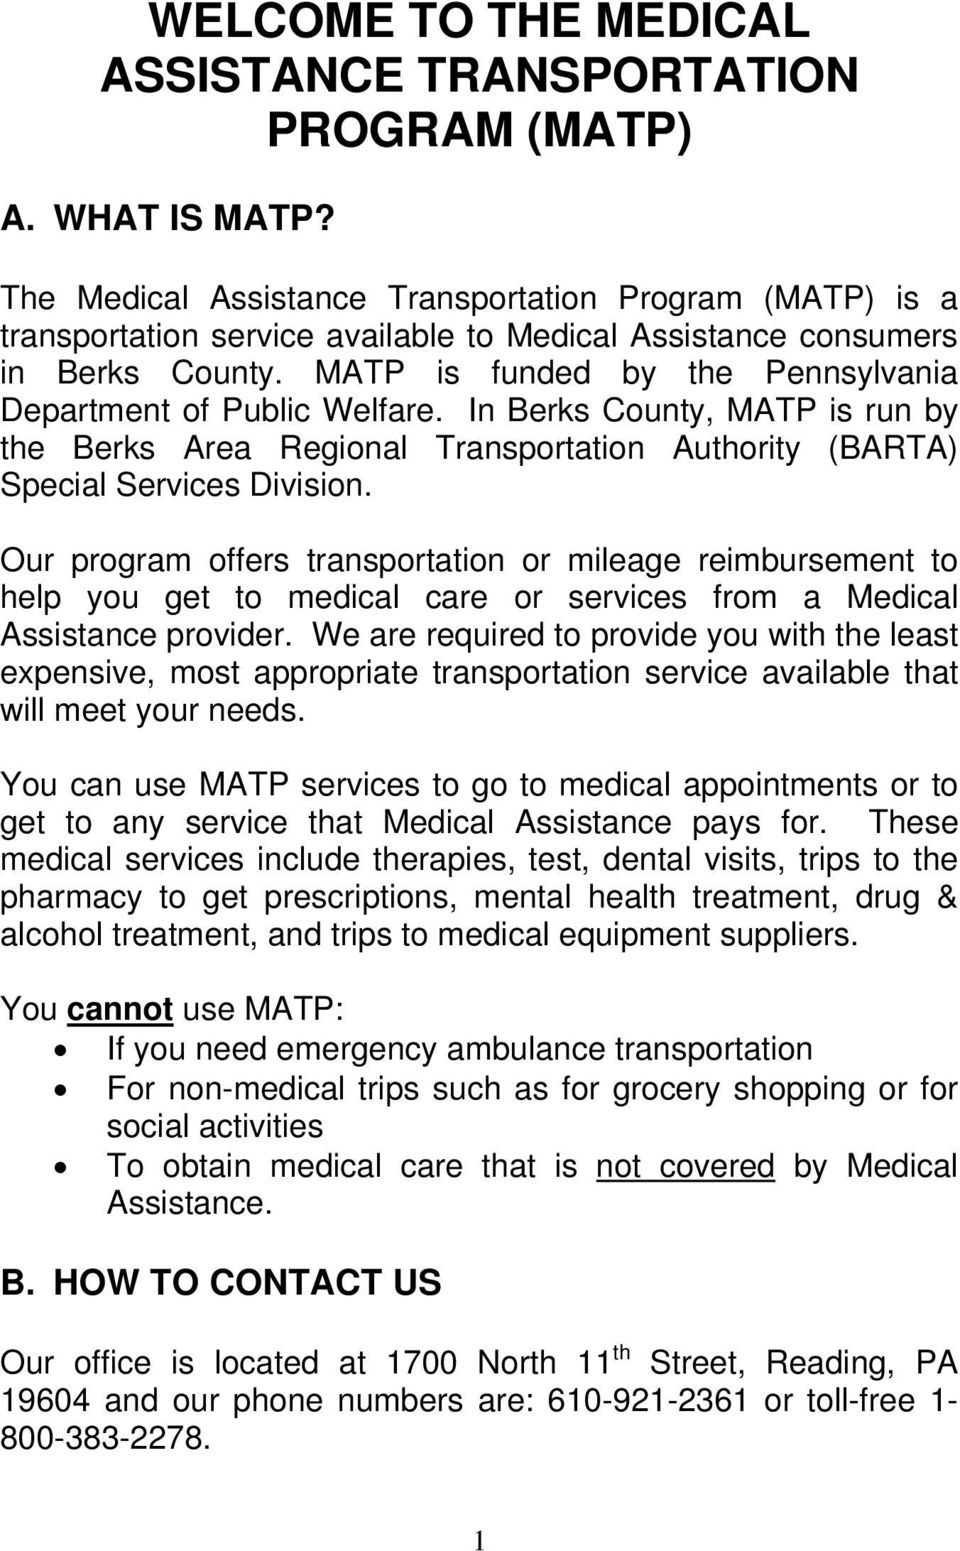 MATP is funded by the Pennsylvania Department of Public Welfare. In Berks County, MATP is run by the Berks Area Regional Transportation Authority (BARTA) Special Services Division.